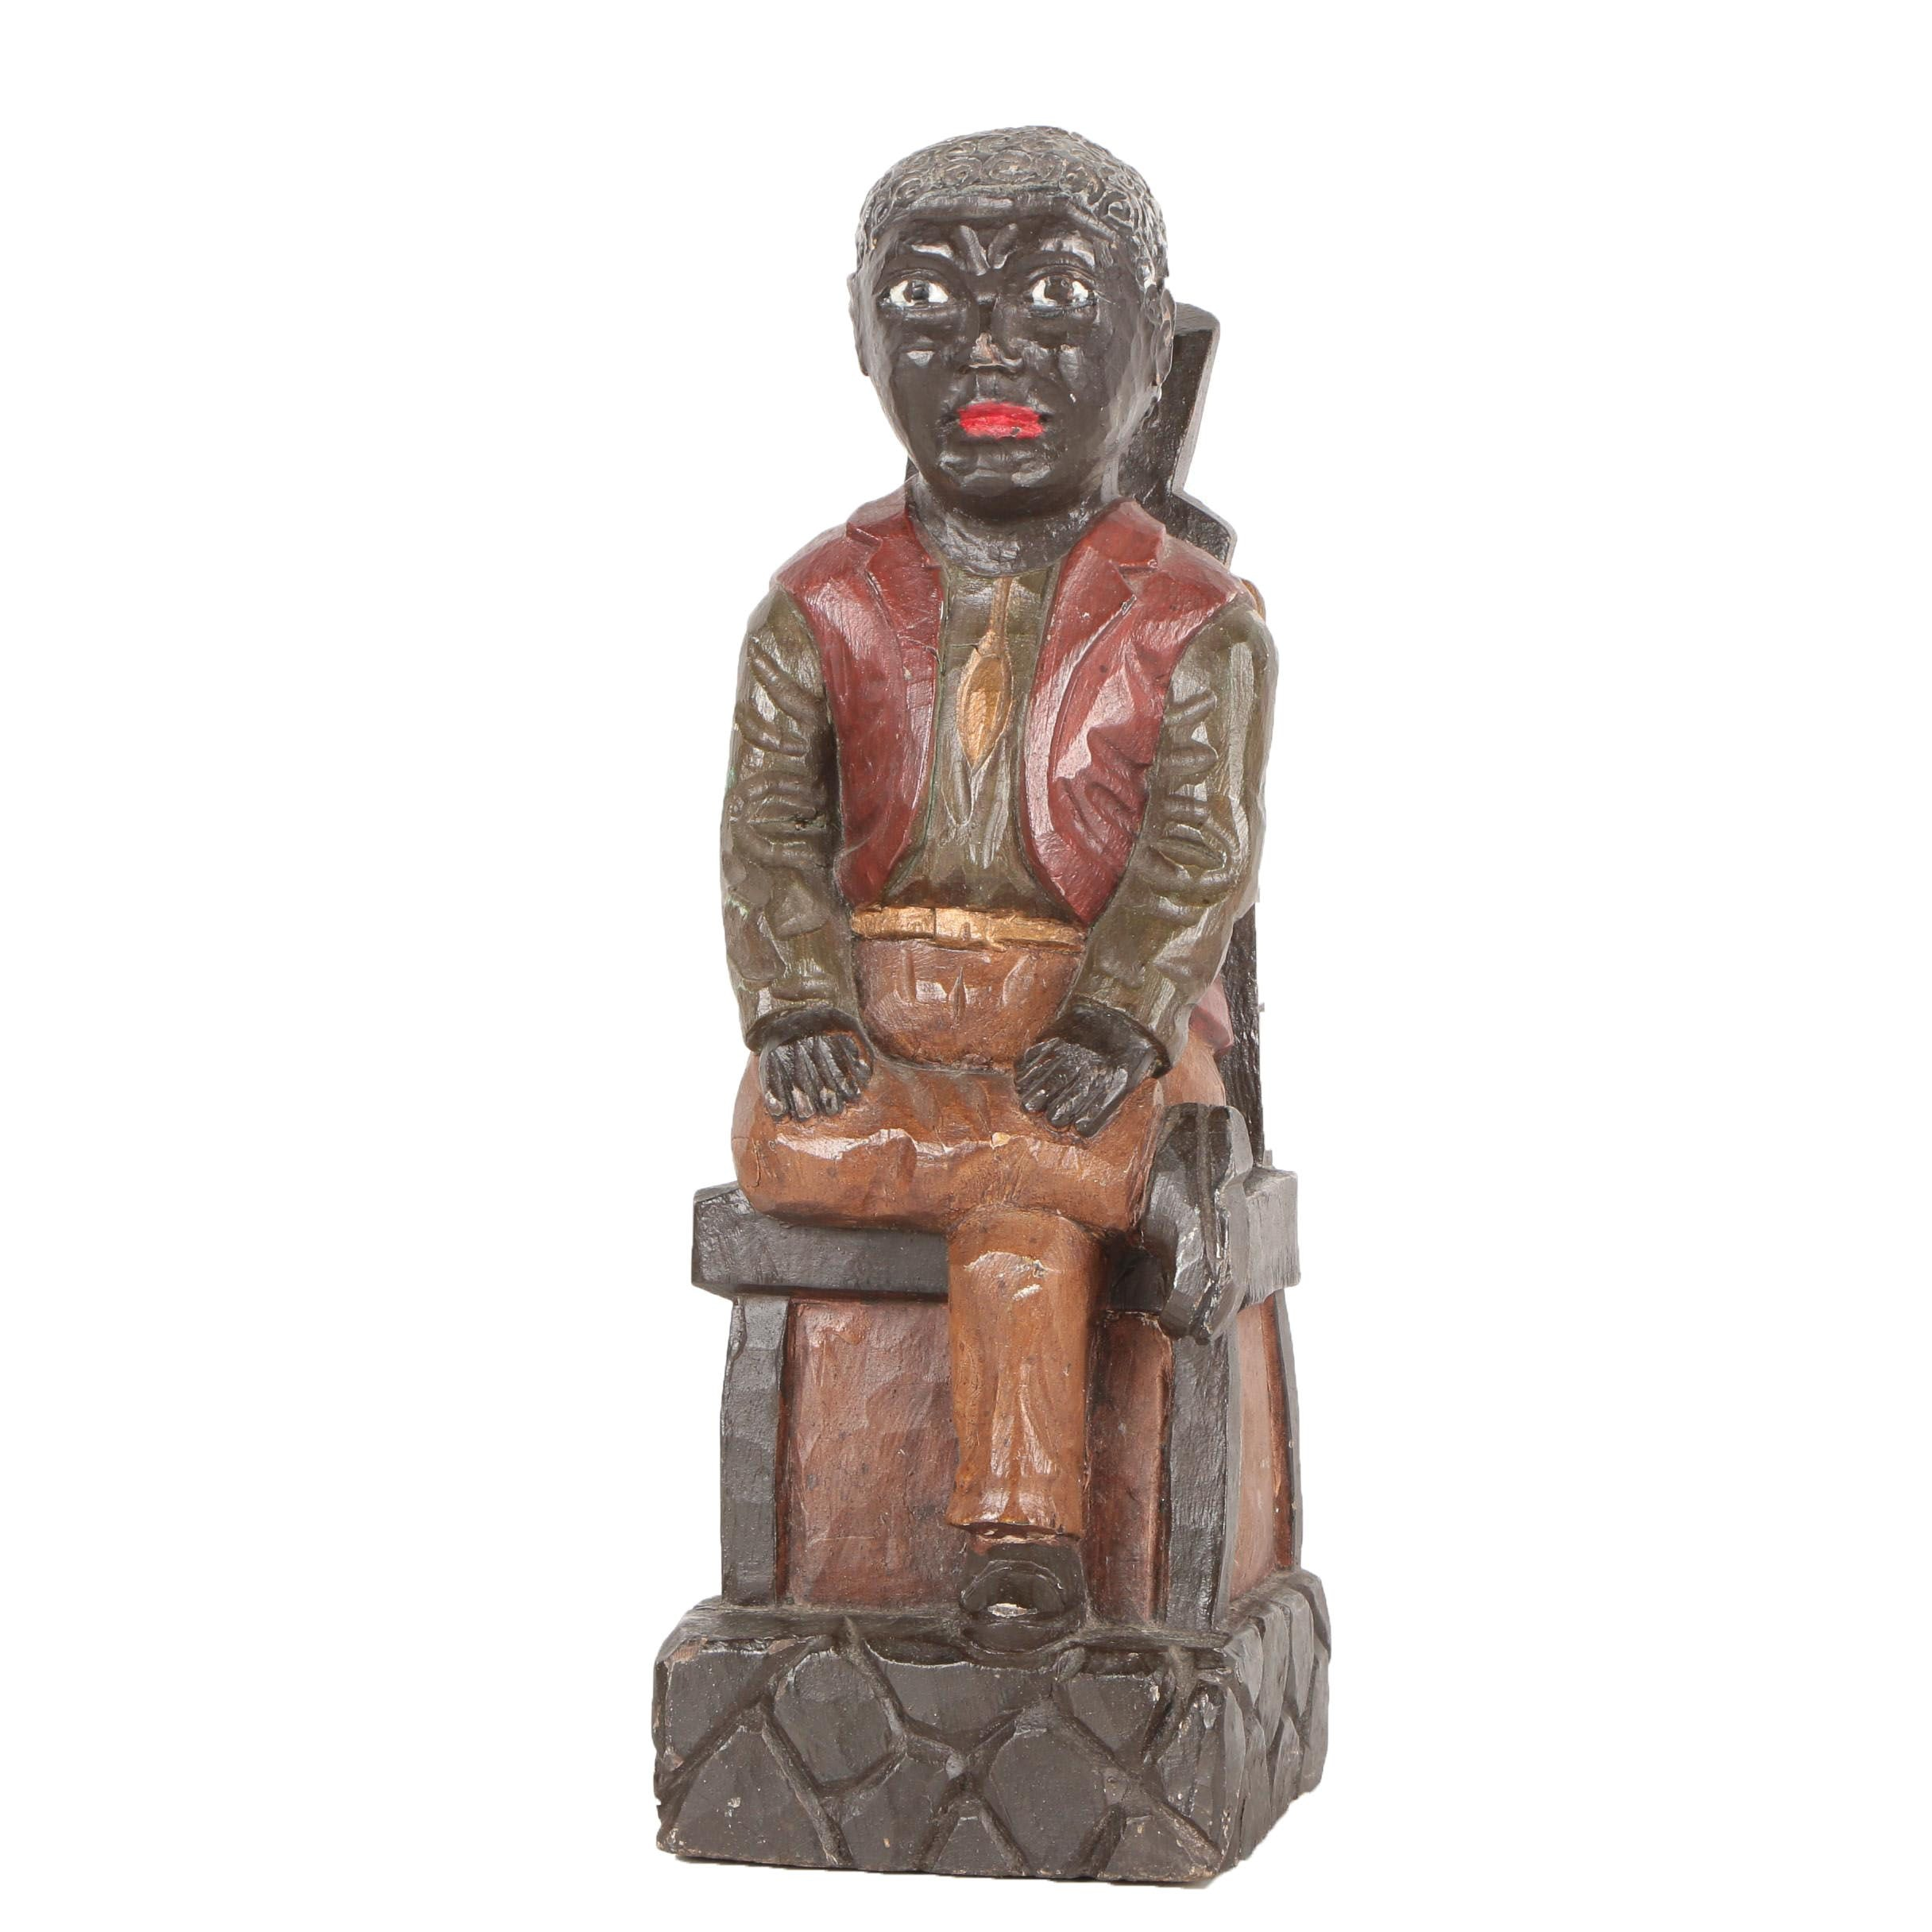 Late 19th to Early 20th Century Folk Art Sculpture